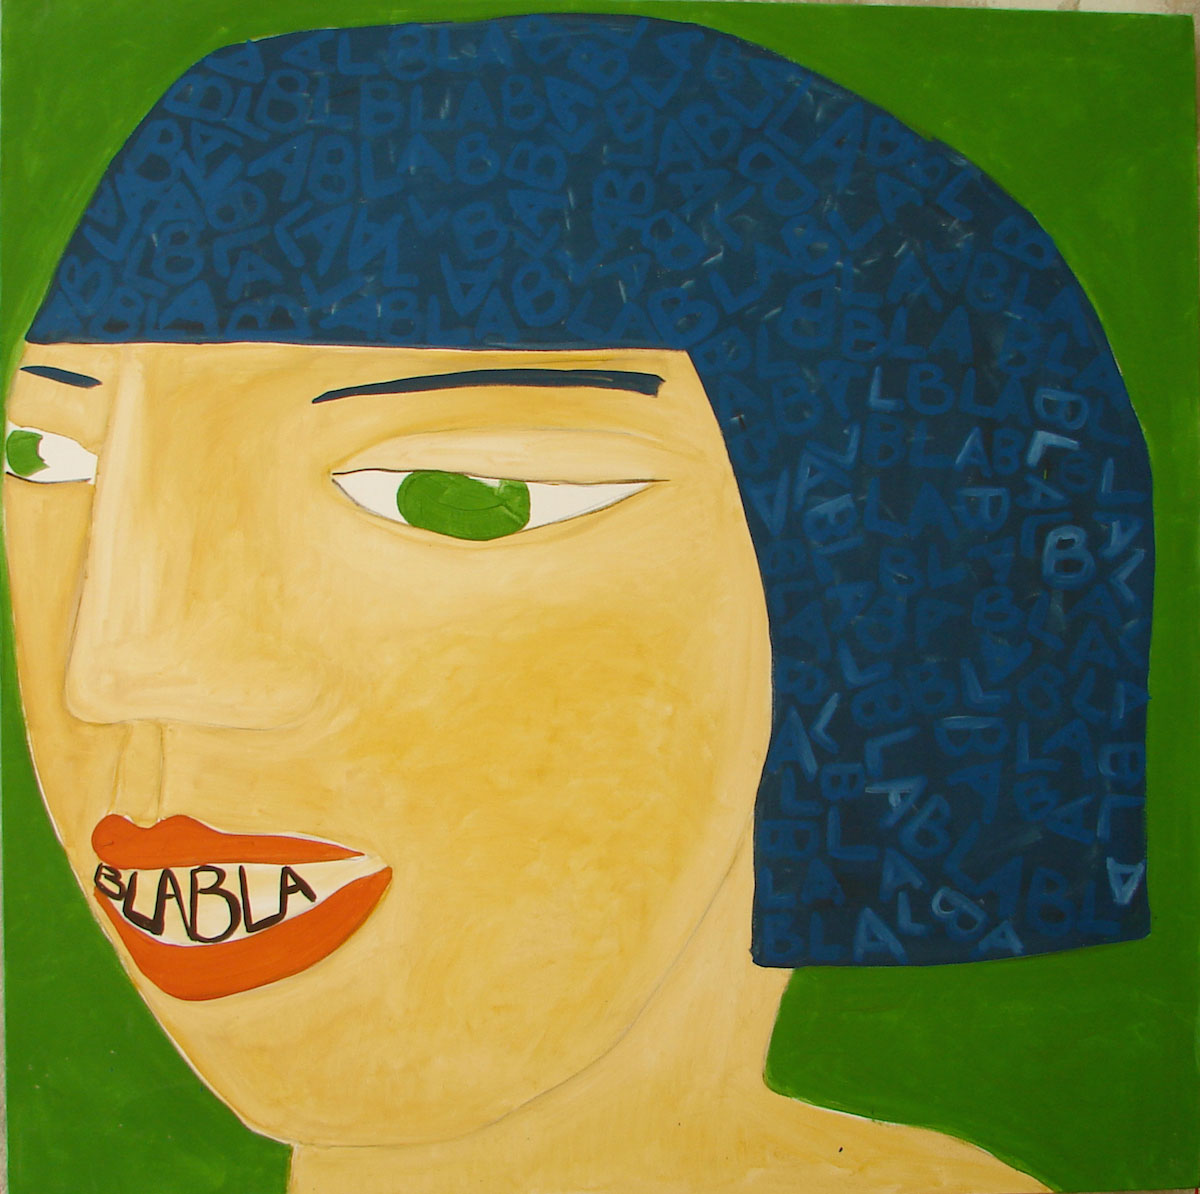 VIVIANA  pigment and acrylic on canvas. 100x100cm. 2008